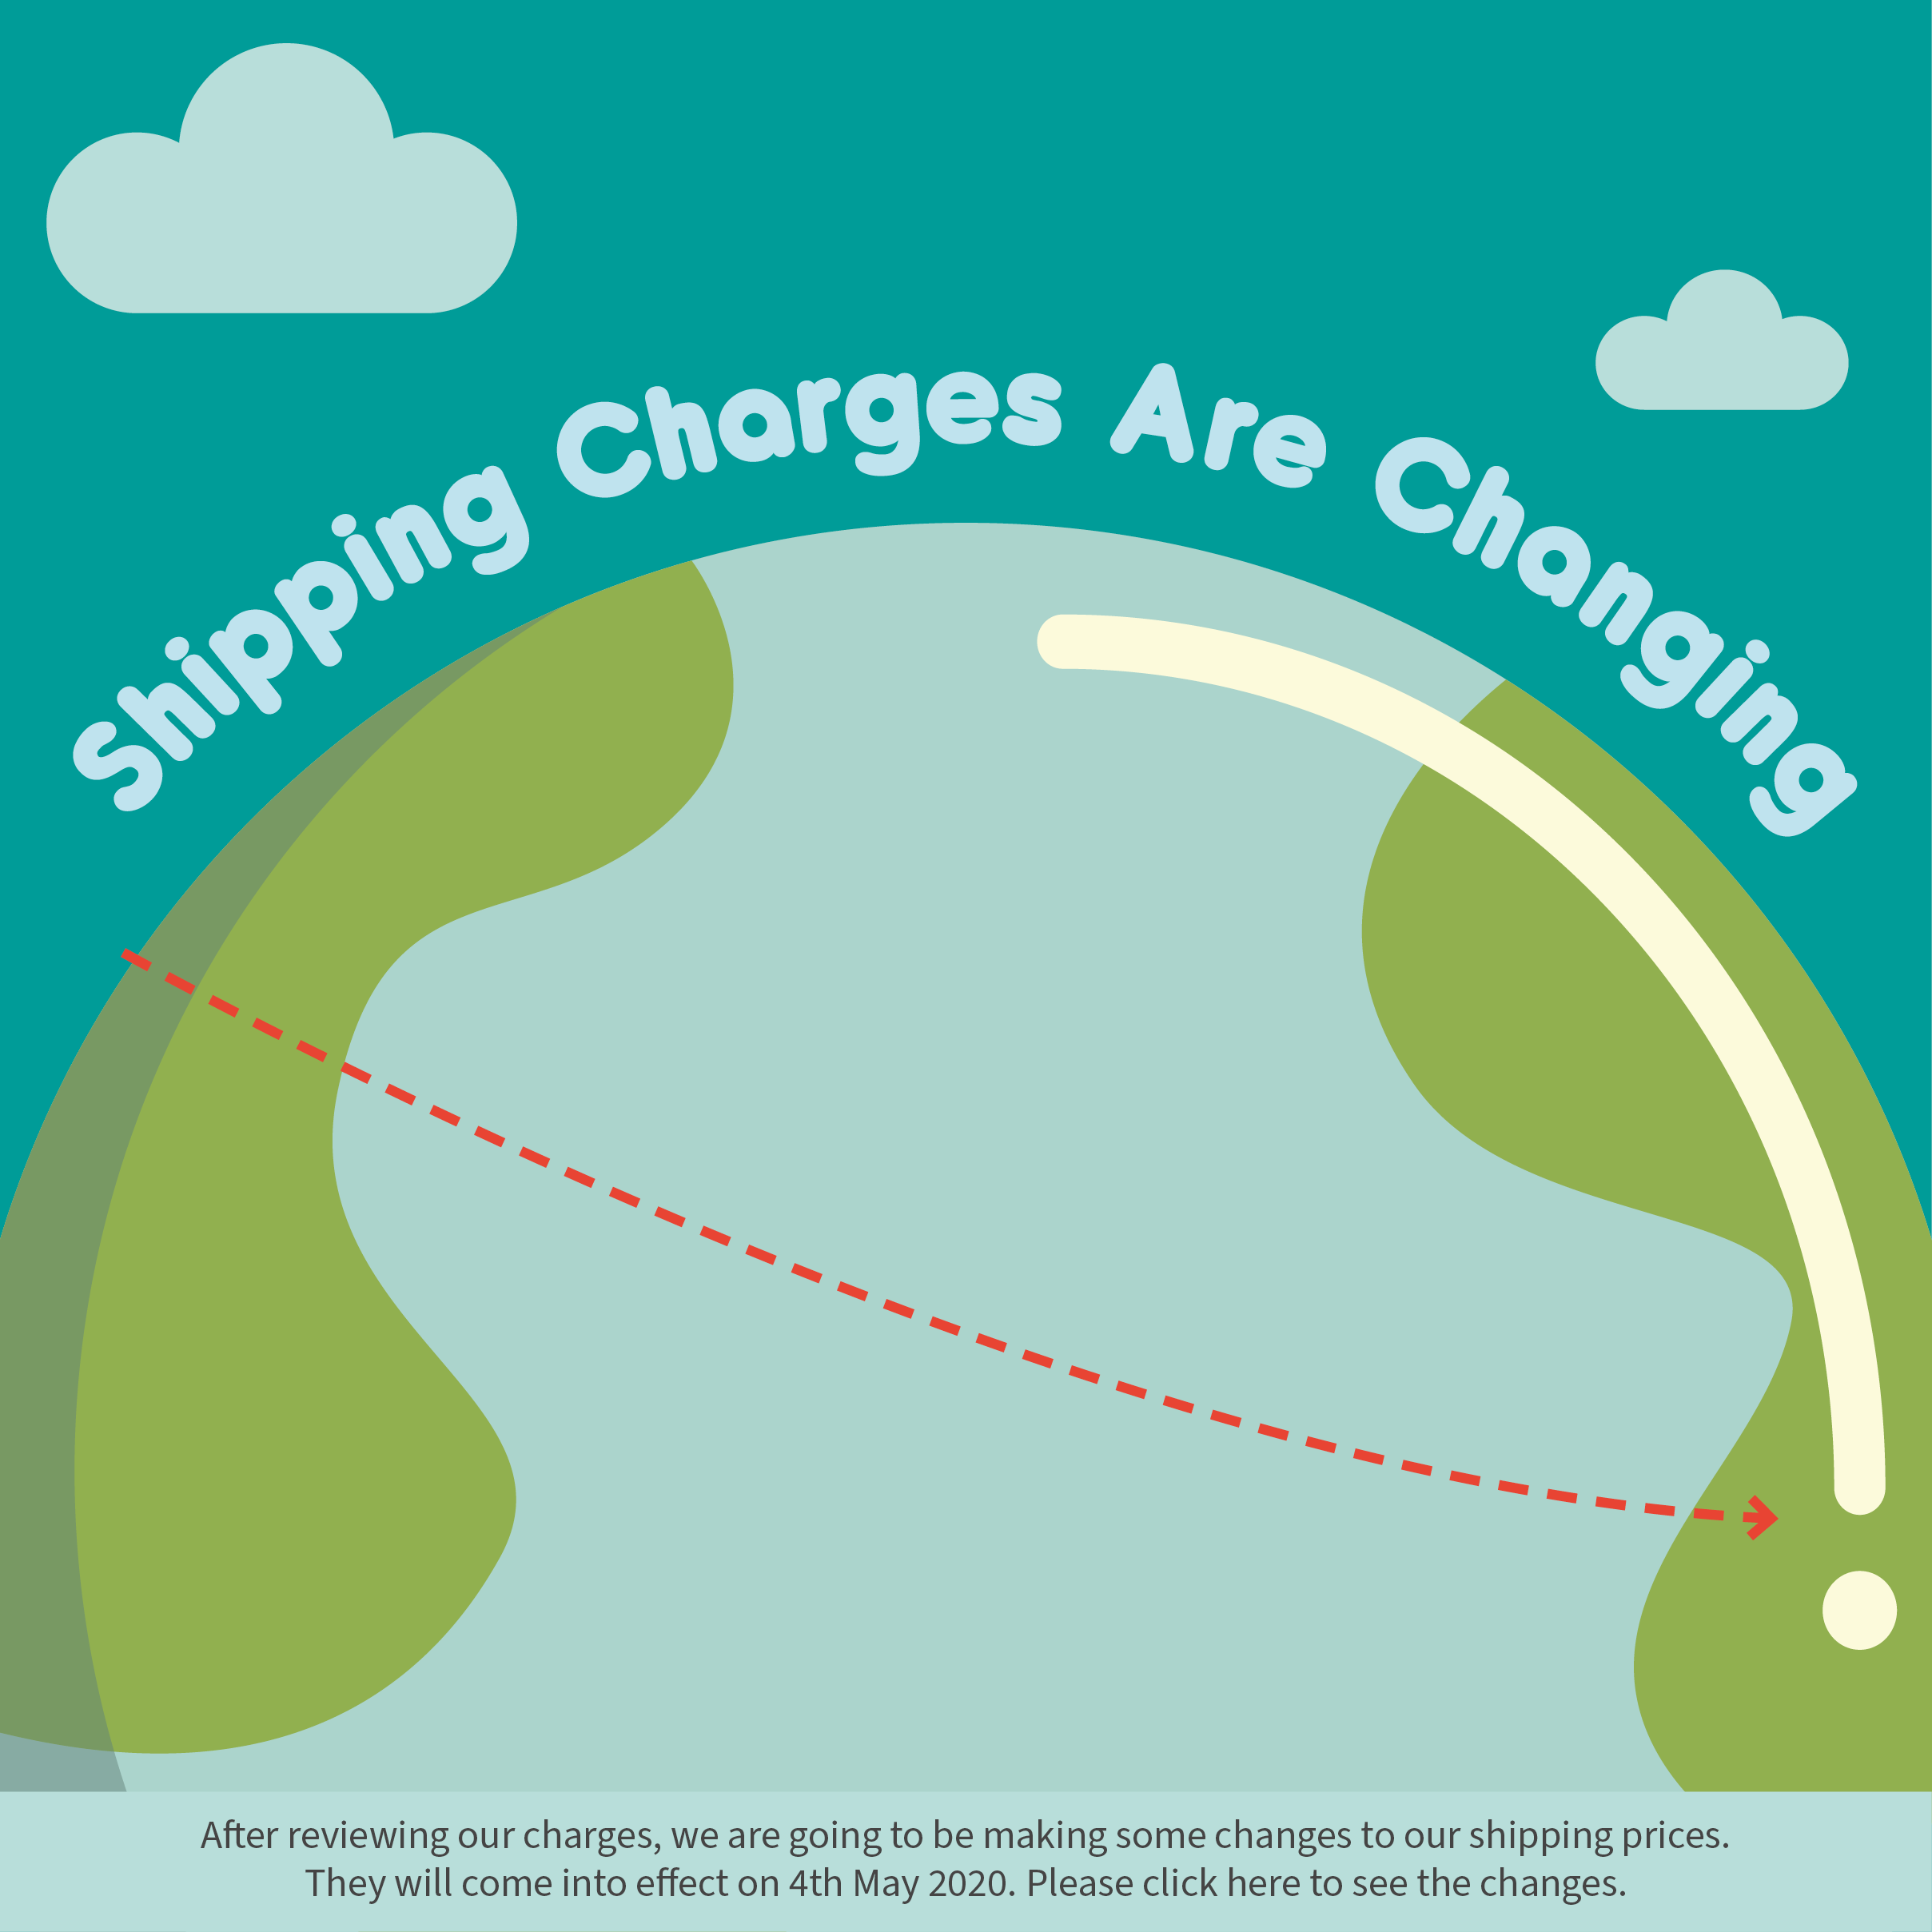 Shipping Charges are Changing